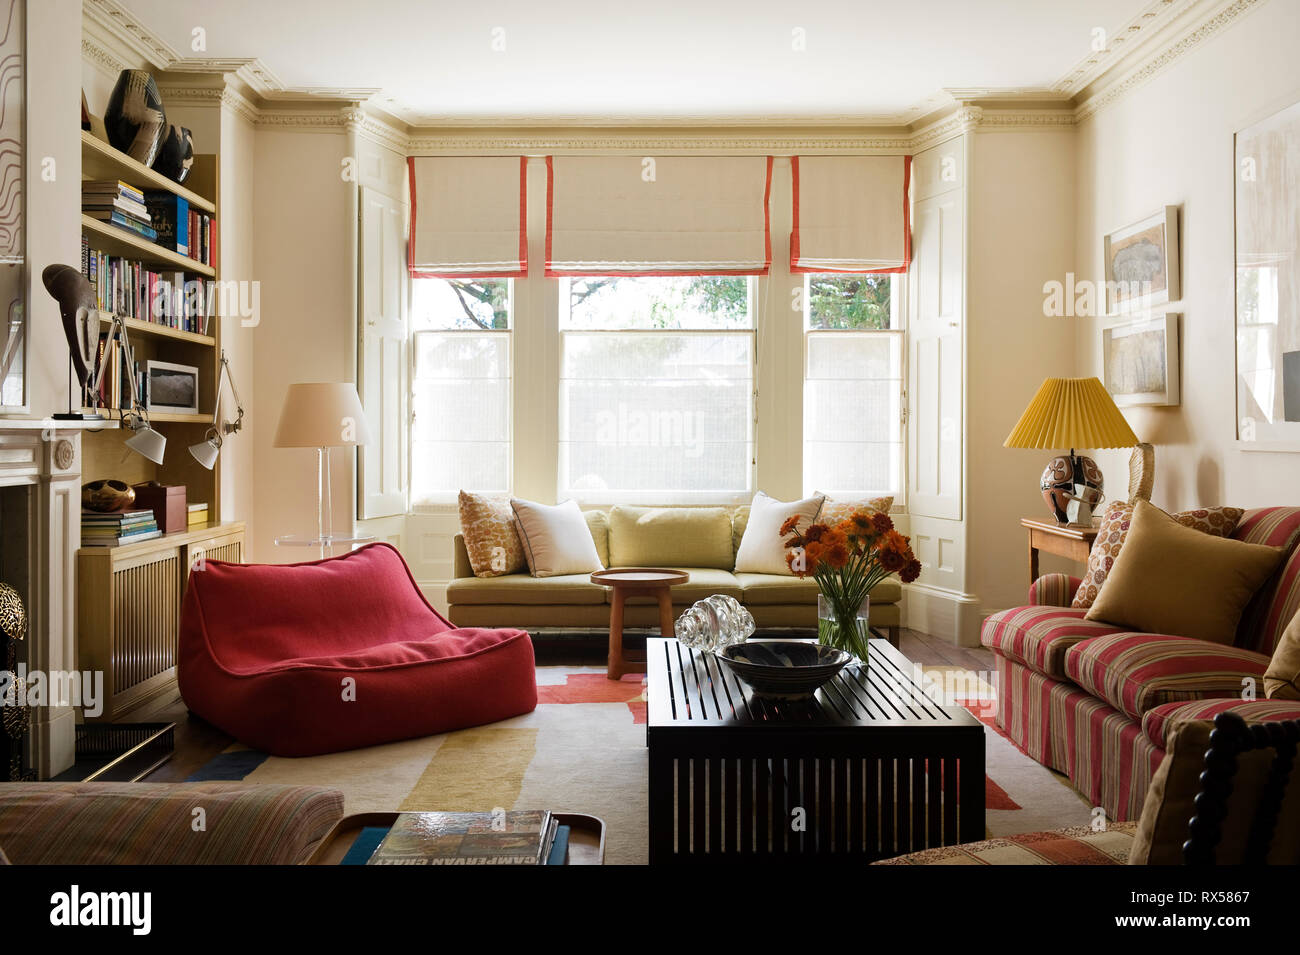 Country style living room with bay window Stock Photo ...